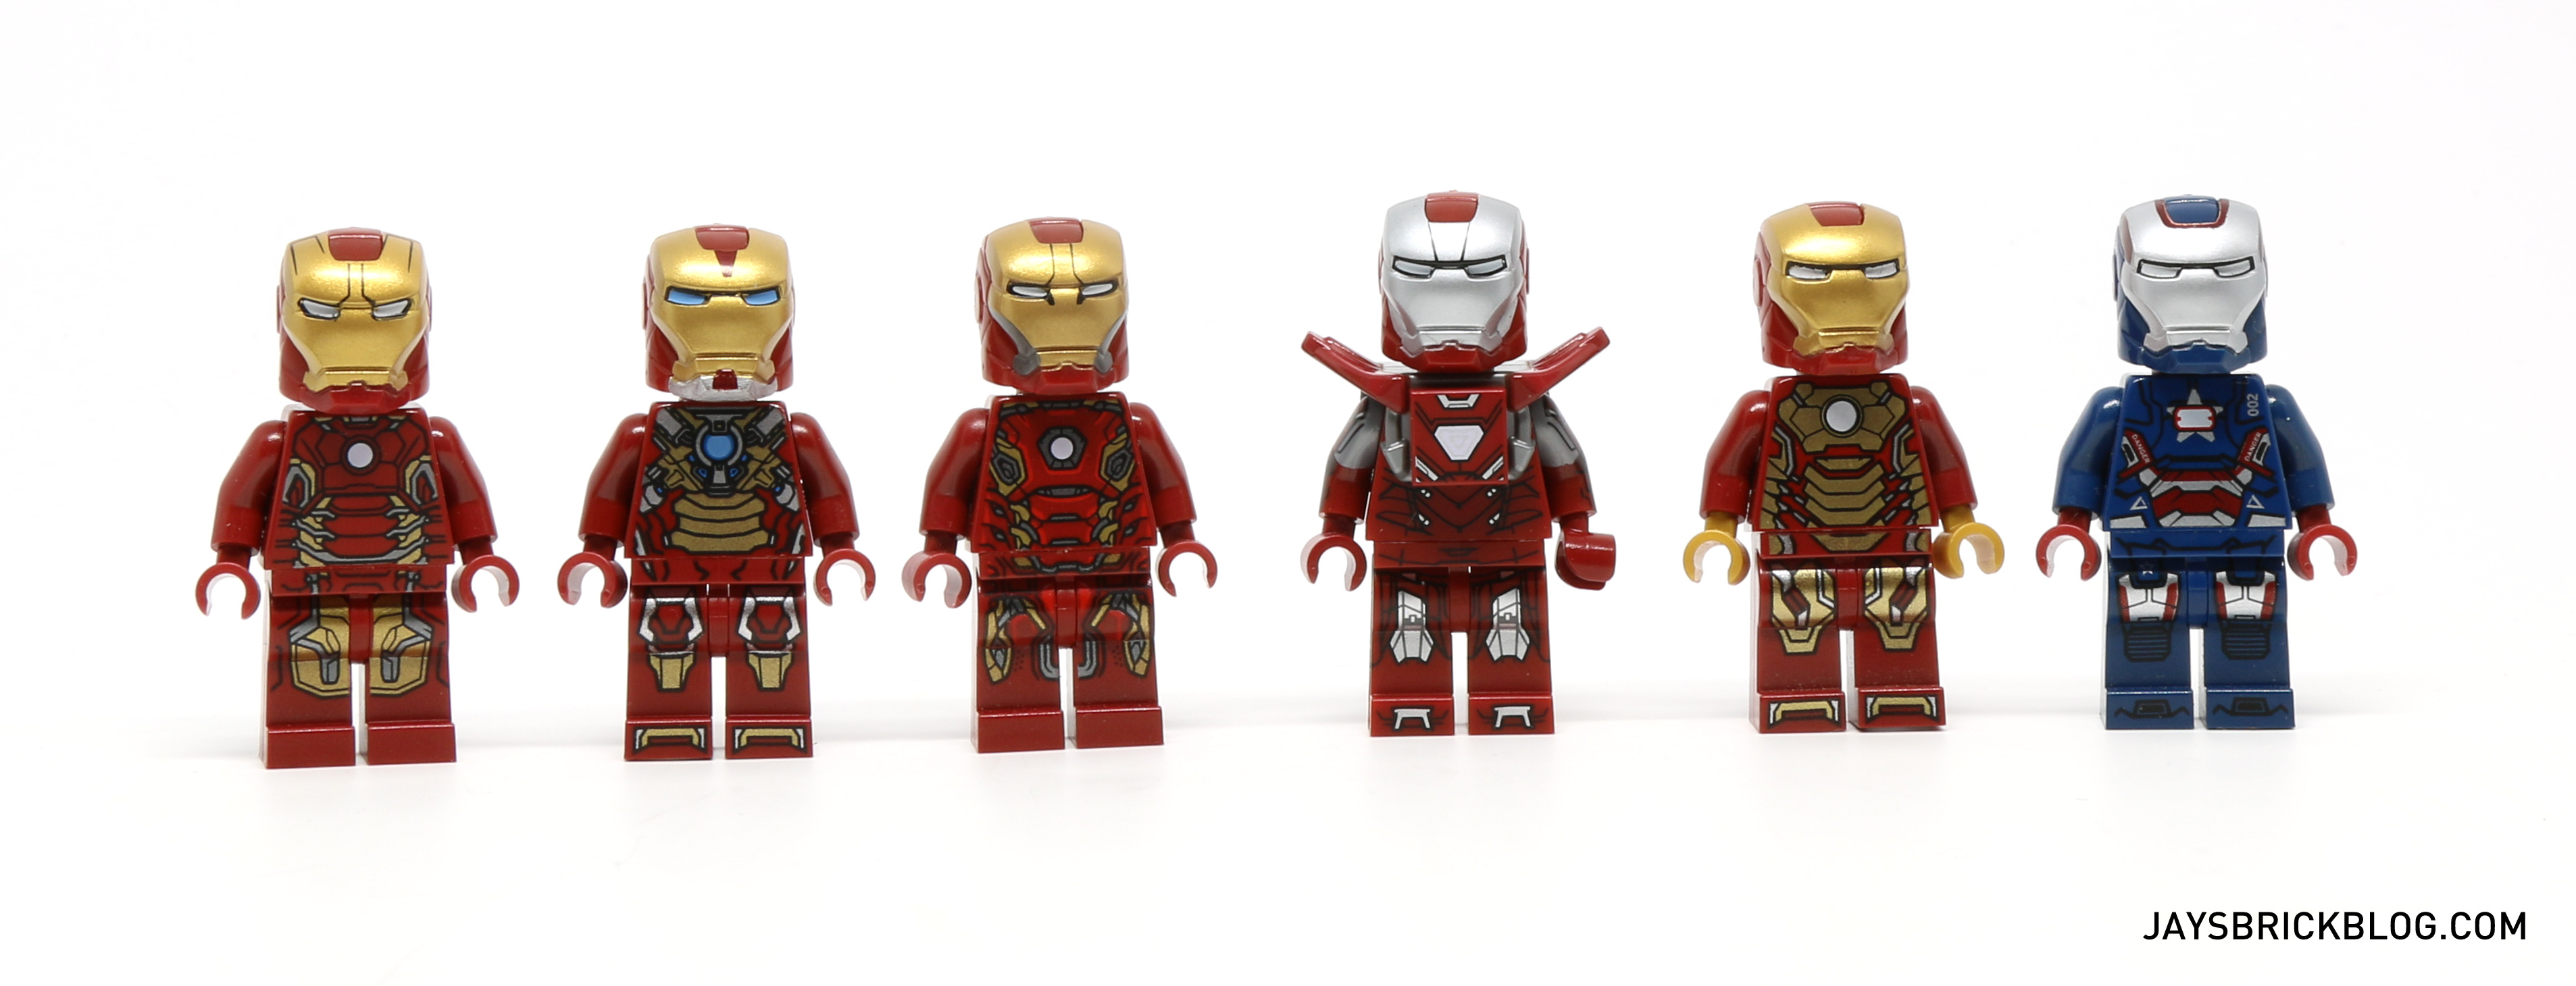 Review: LEGO 5002946 – Silver Centurion Polybag